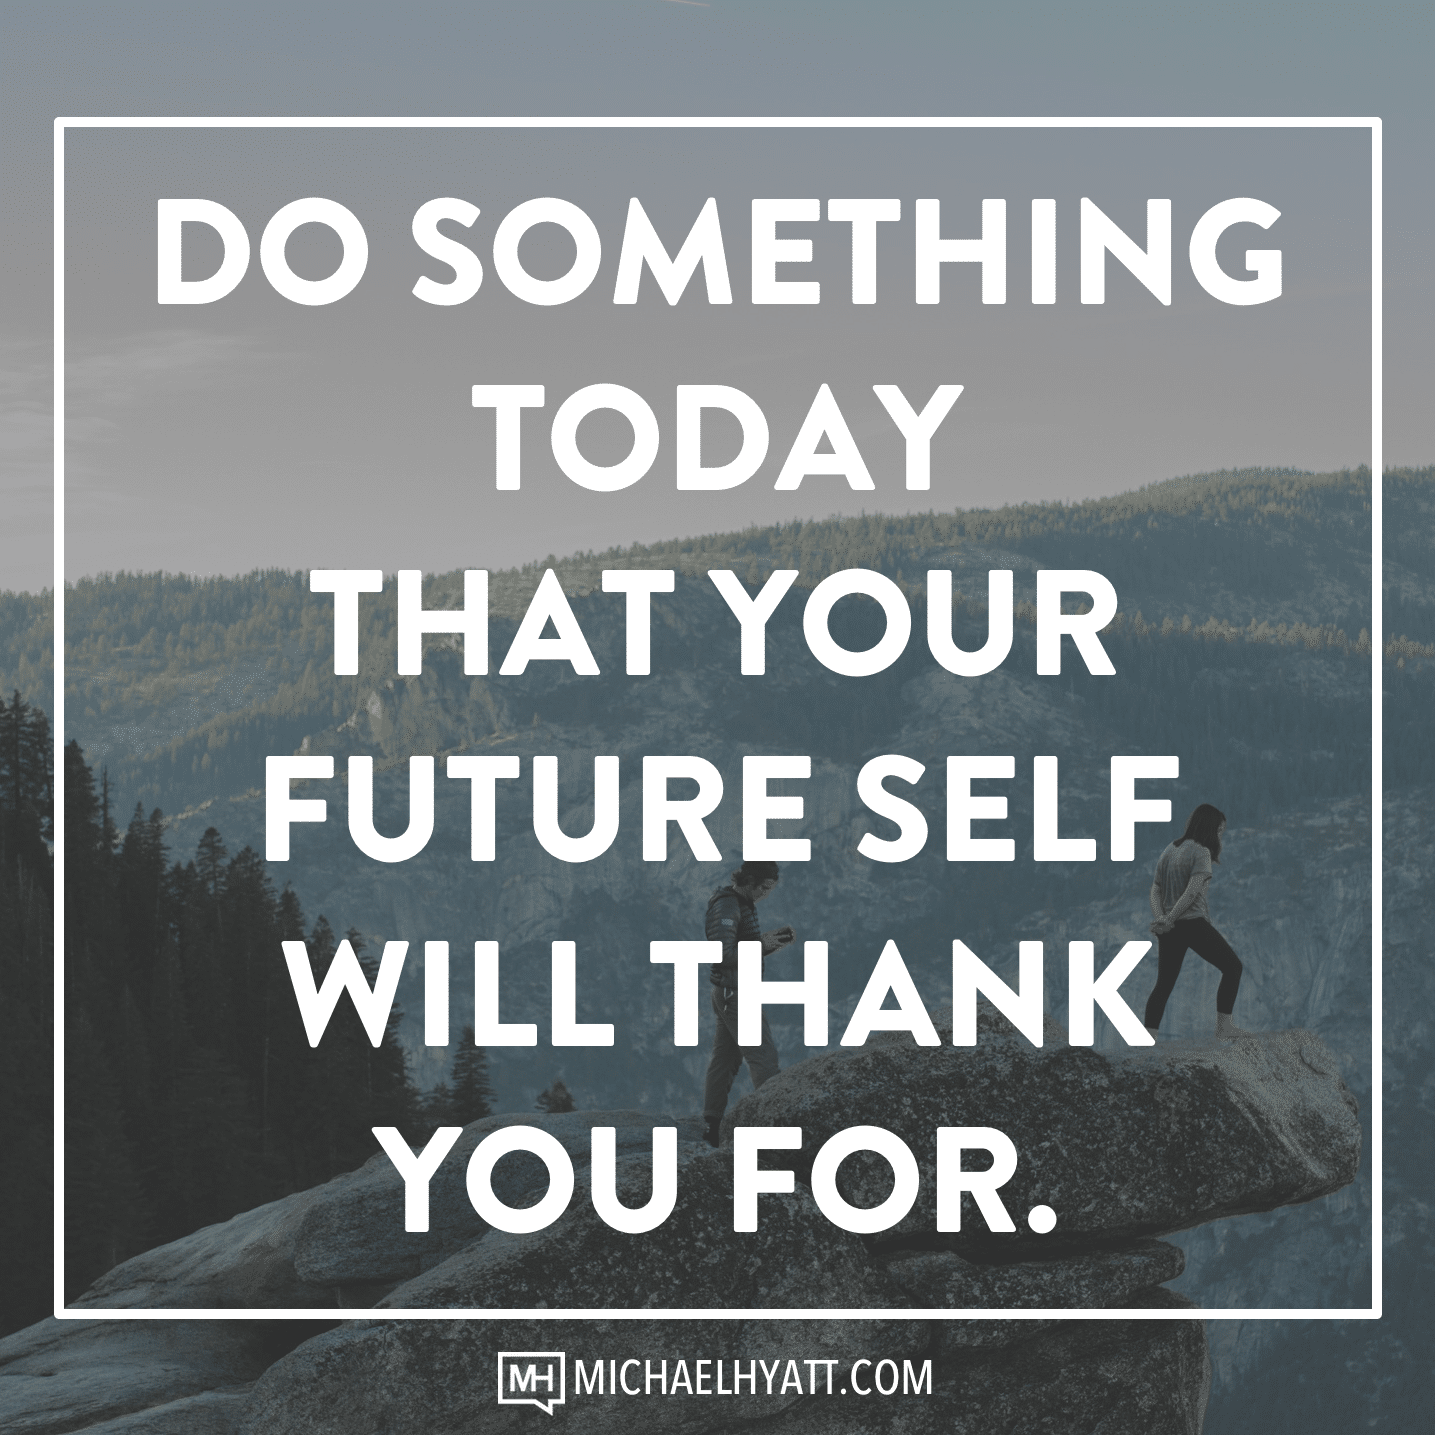 Inspirational Day Quotes: Do Something Today That Your Future Self Will Thank You For